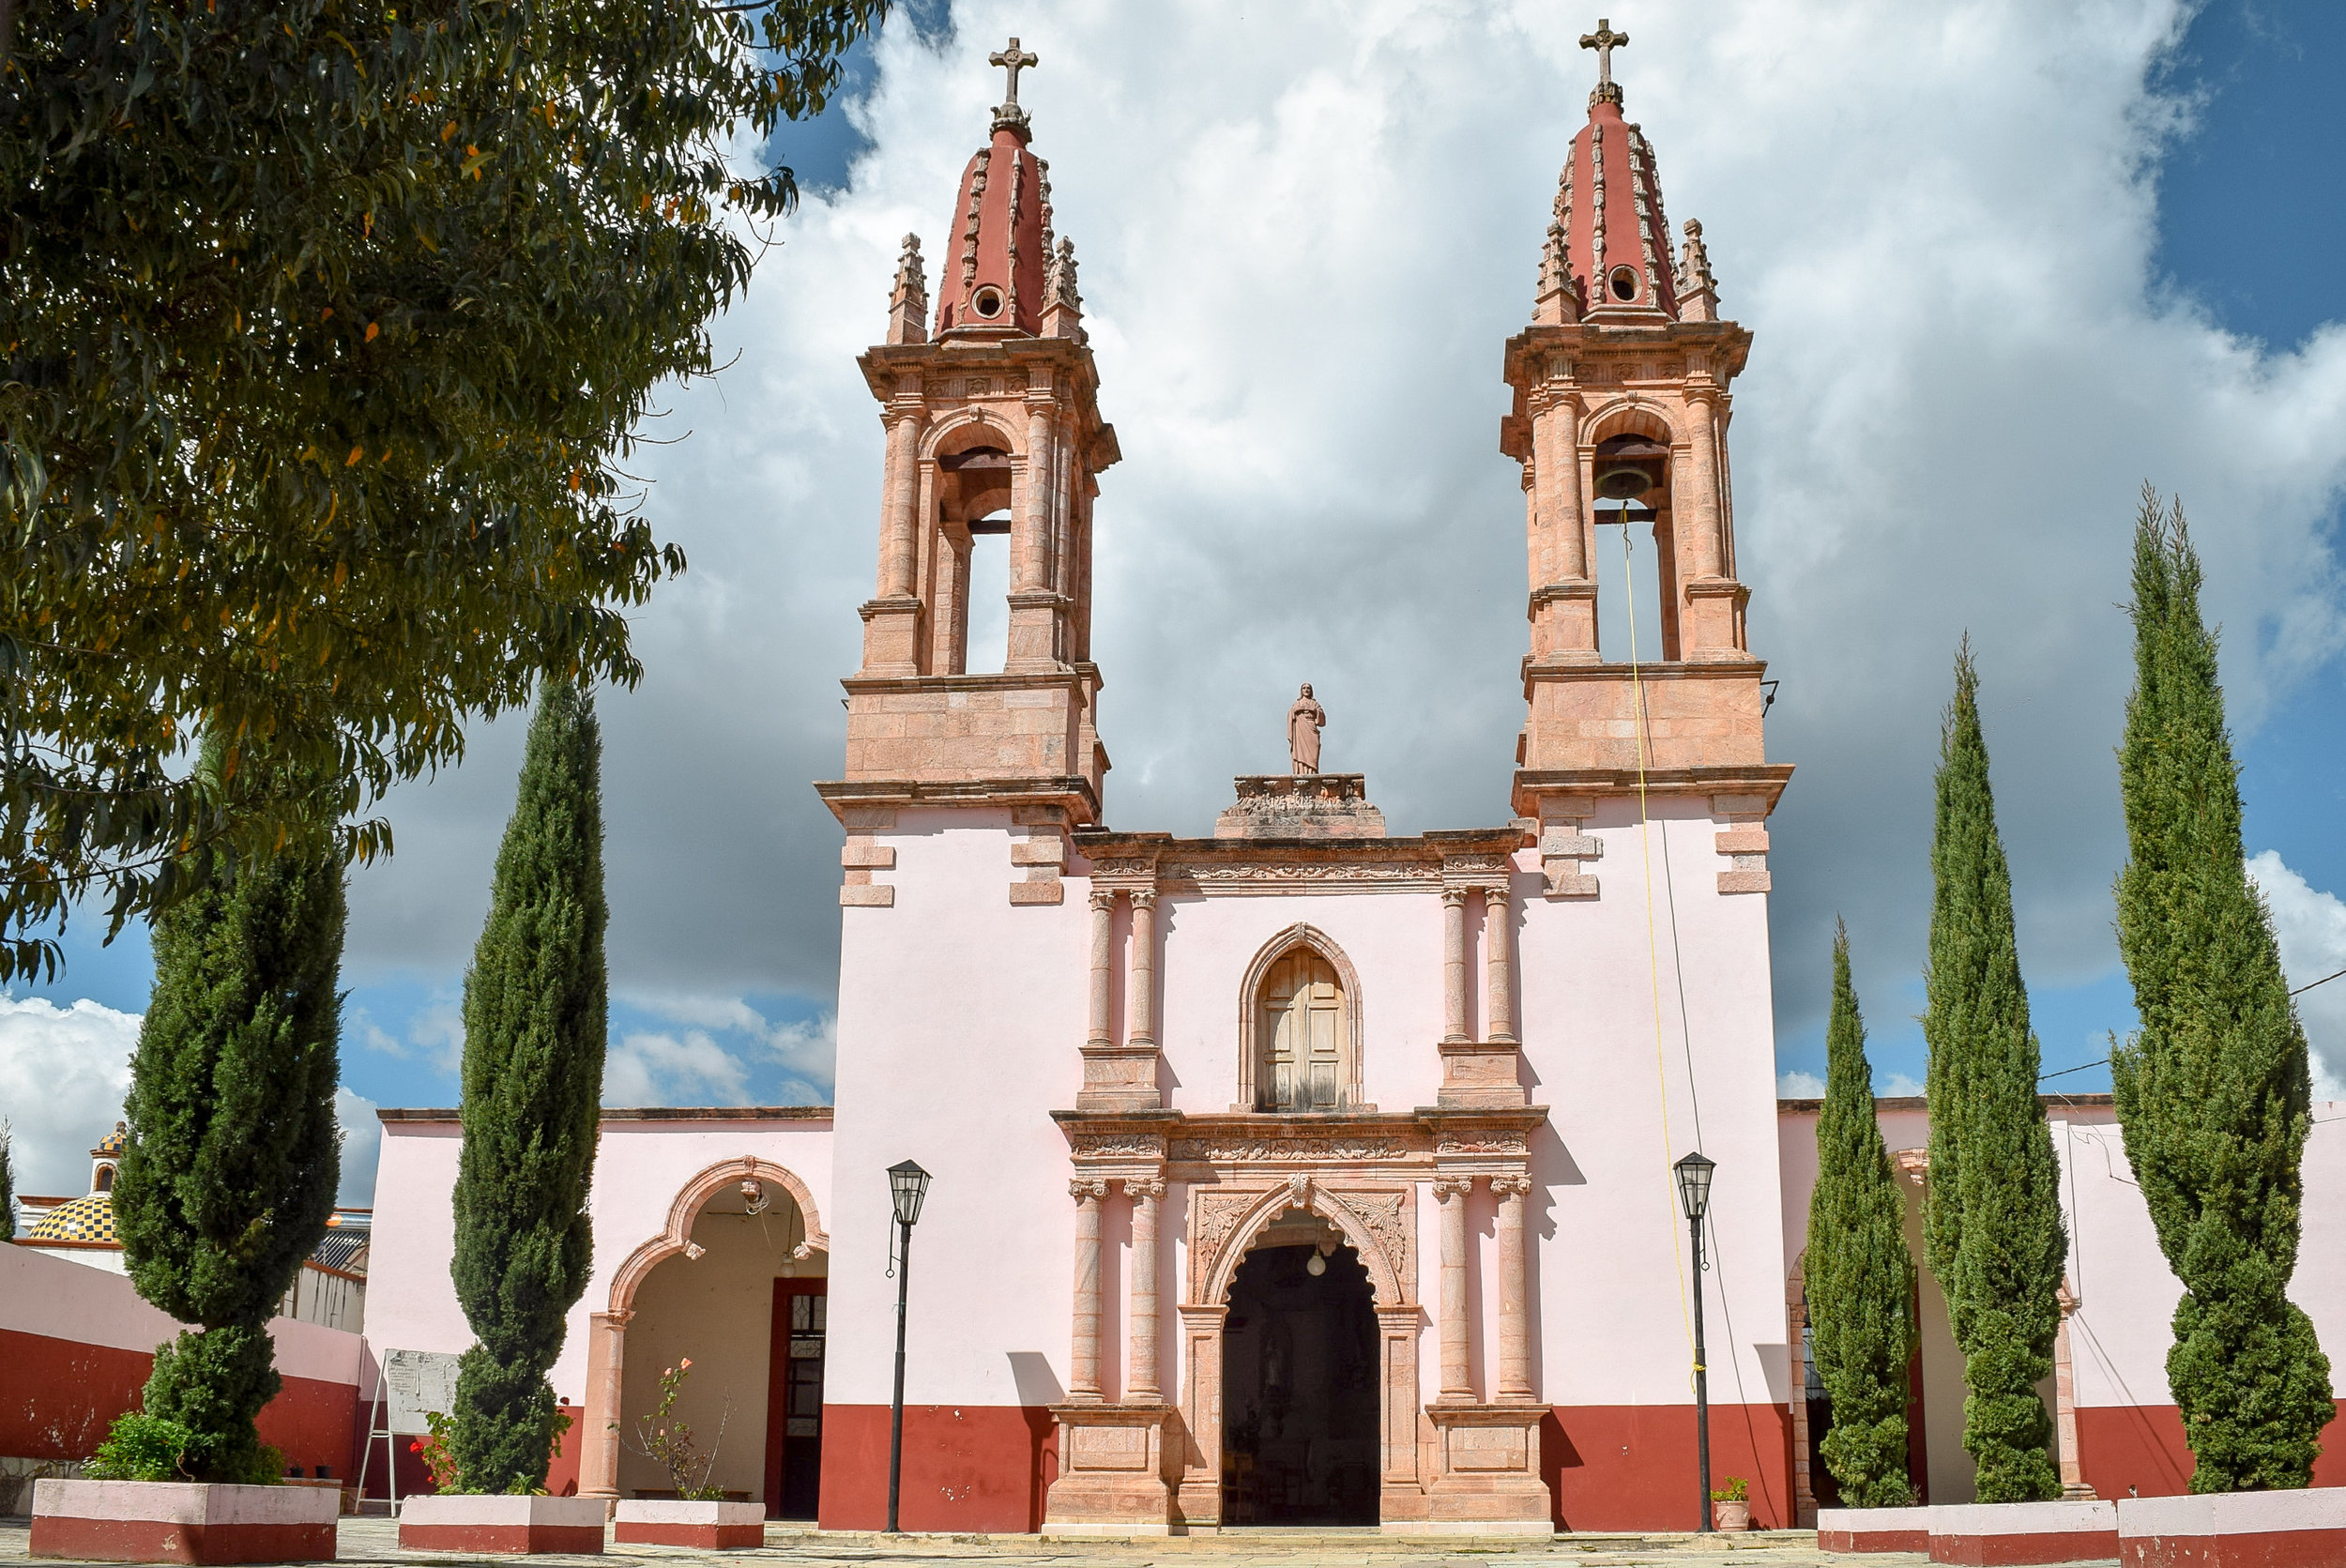 Church in Santa Rosa de Lima, Mexico